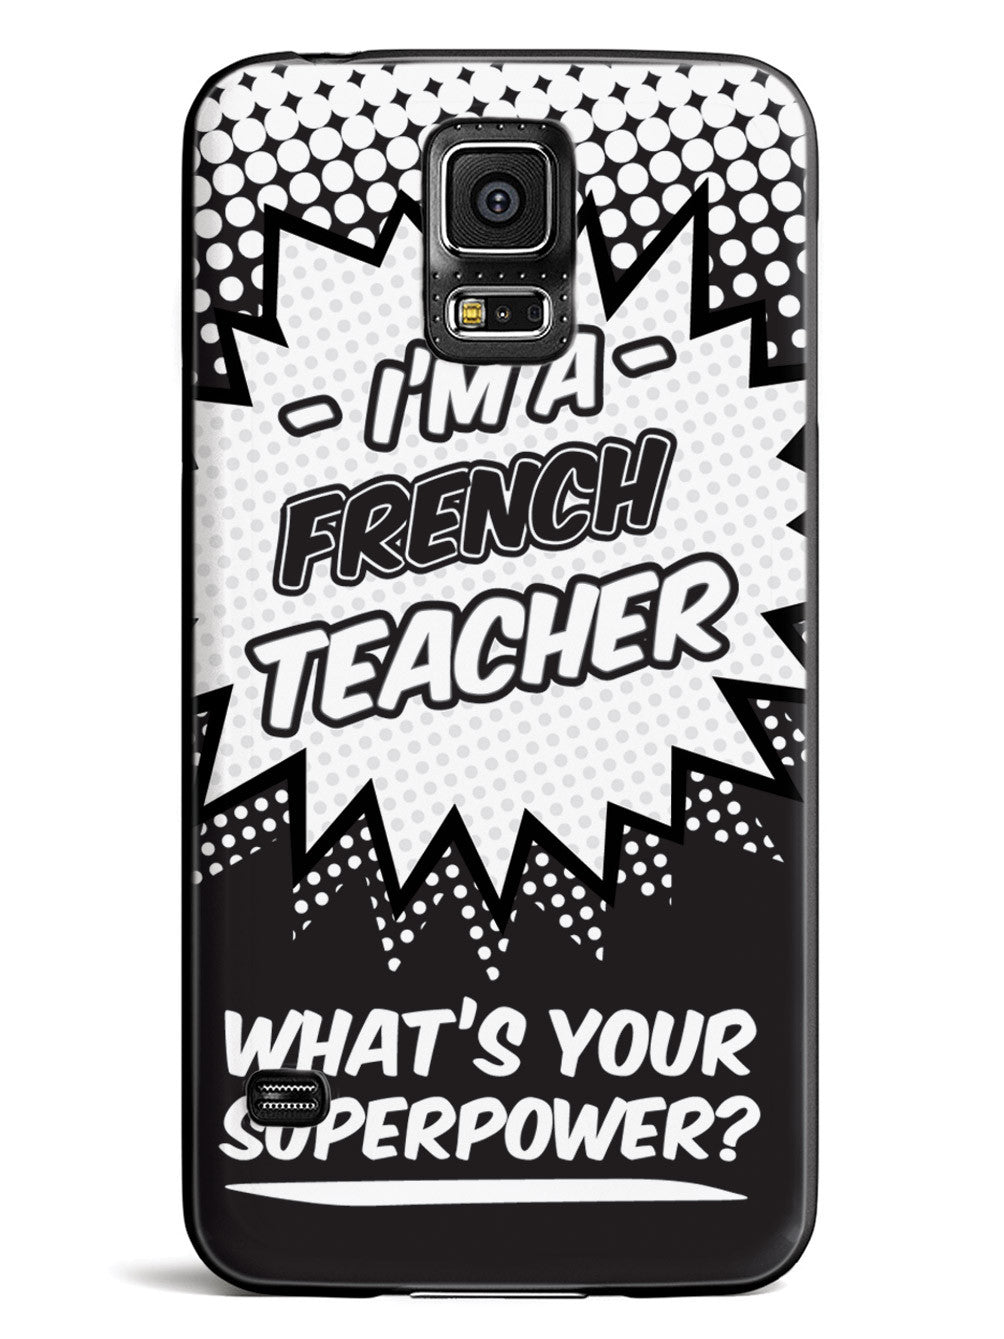 French Teacher - What's Your Superpower? Case